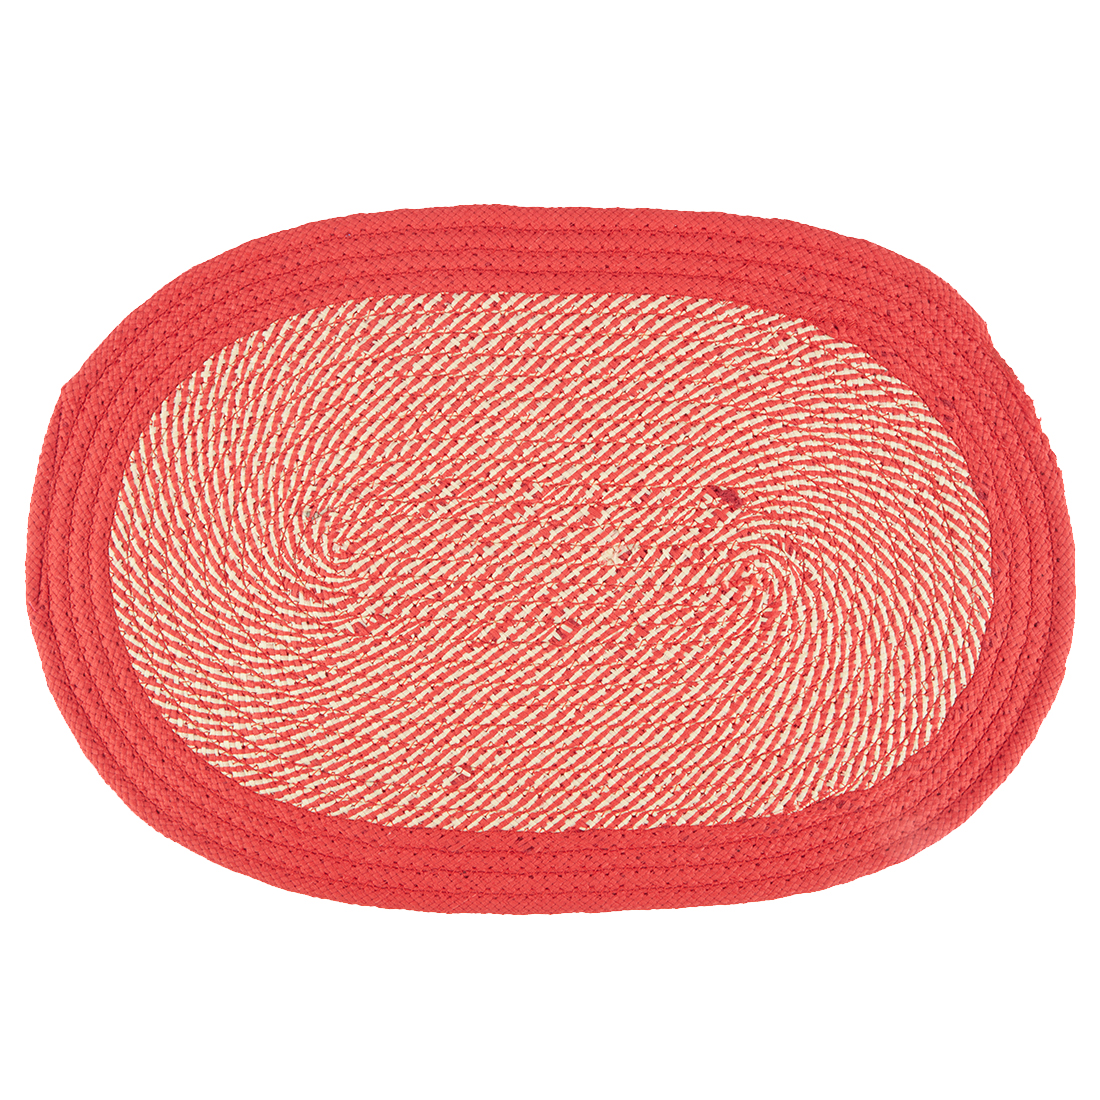 Briaded Polypropylene Mats & Rugs in Red Colour by Living Essence